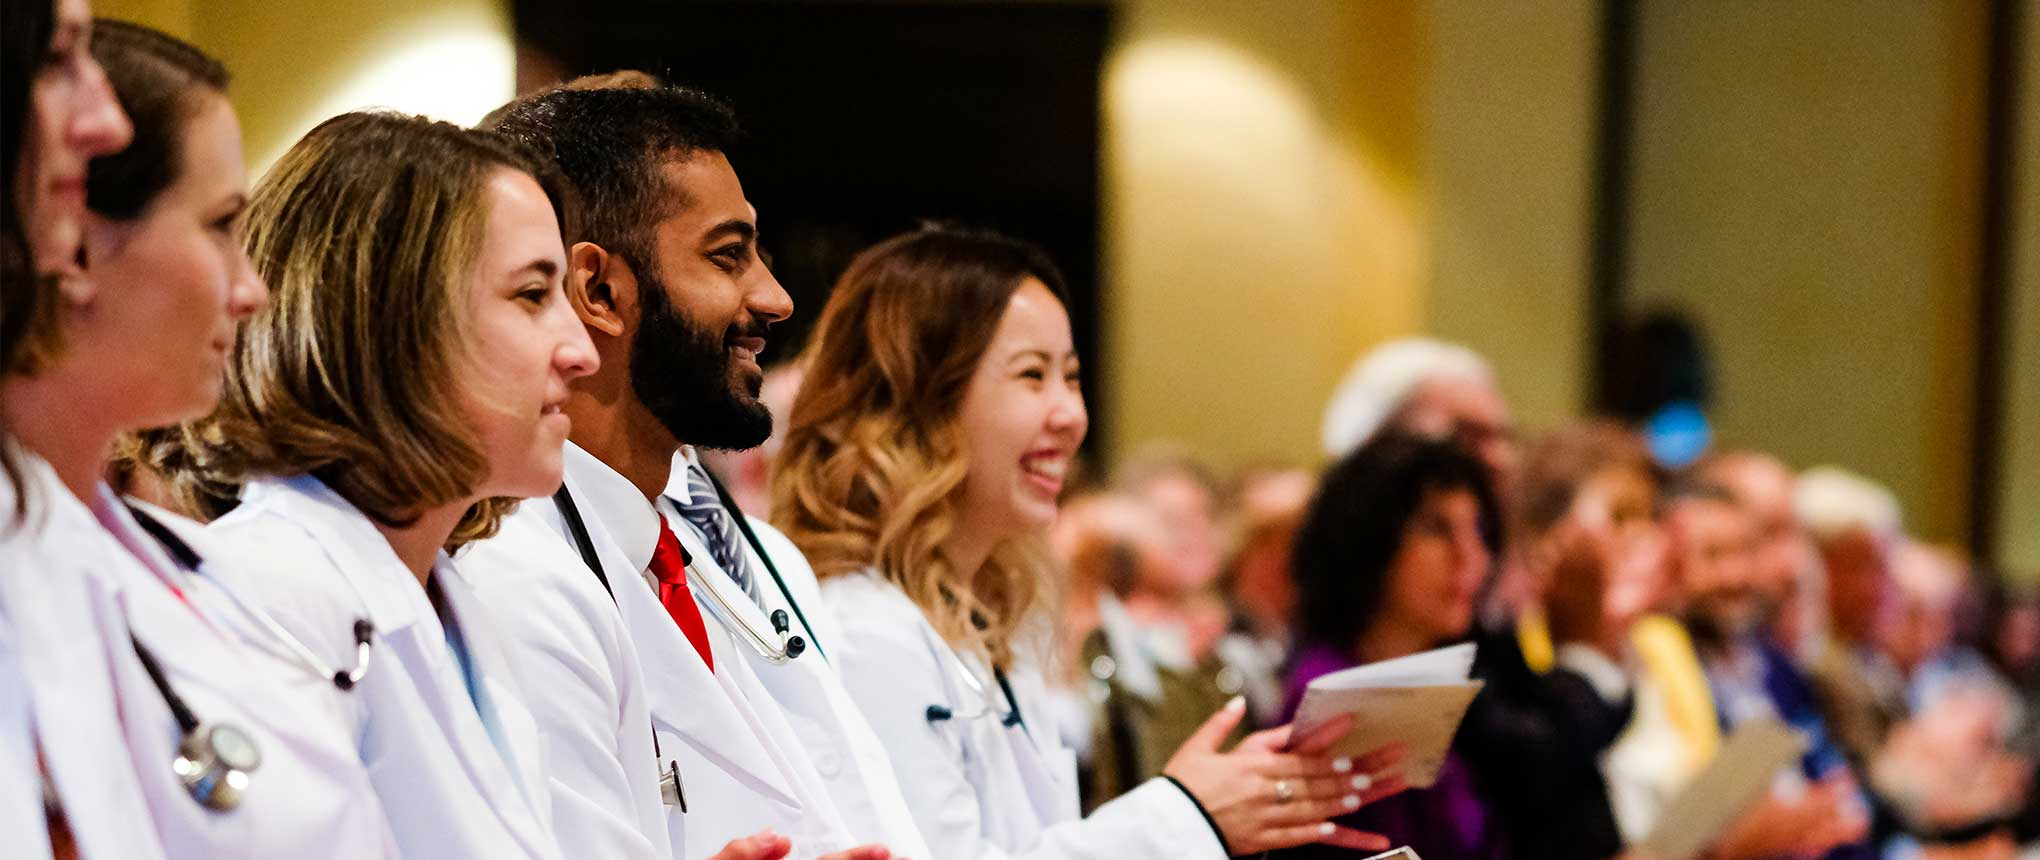 M1 students sit in their seats at the white coat ceremony. They are smiling and clapping toward the stage.